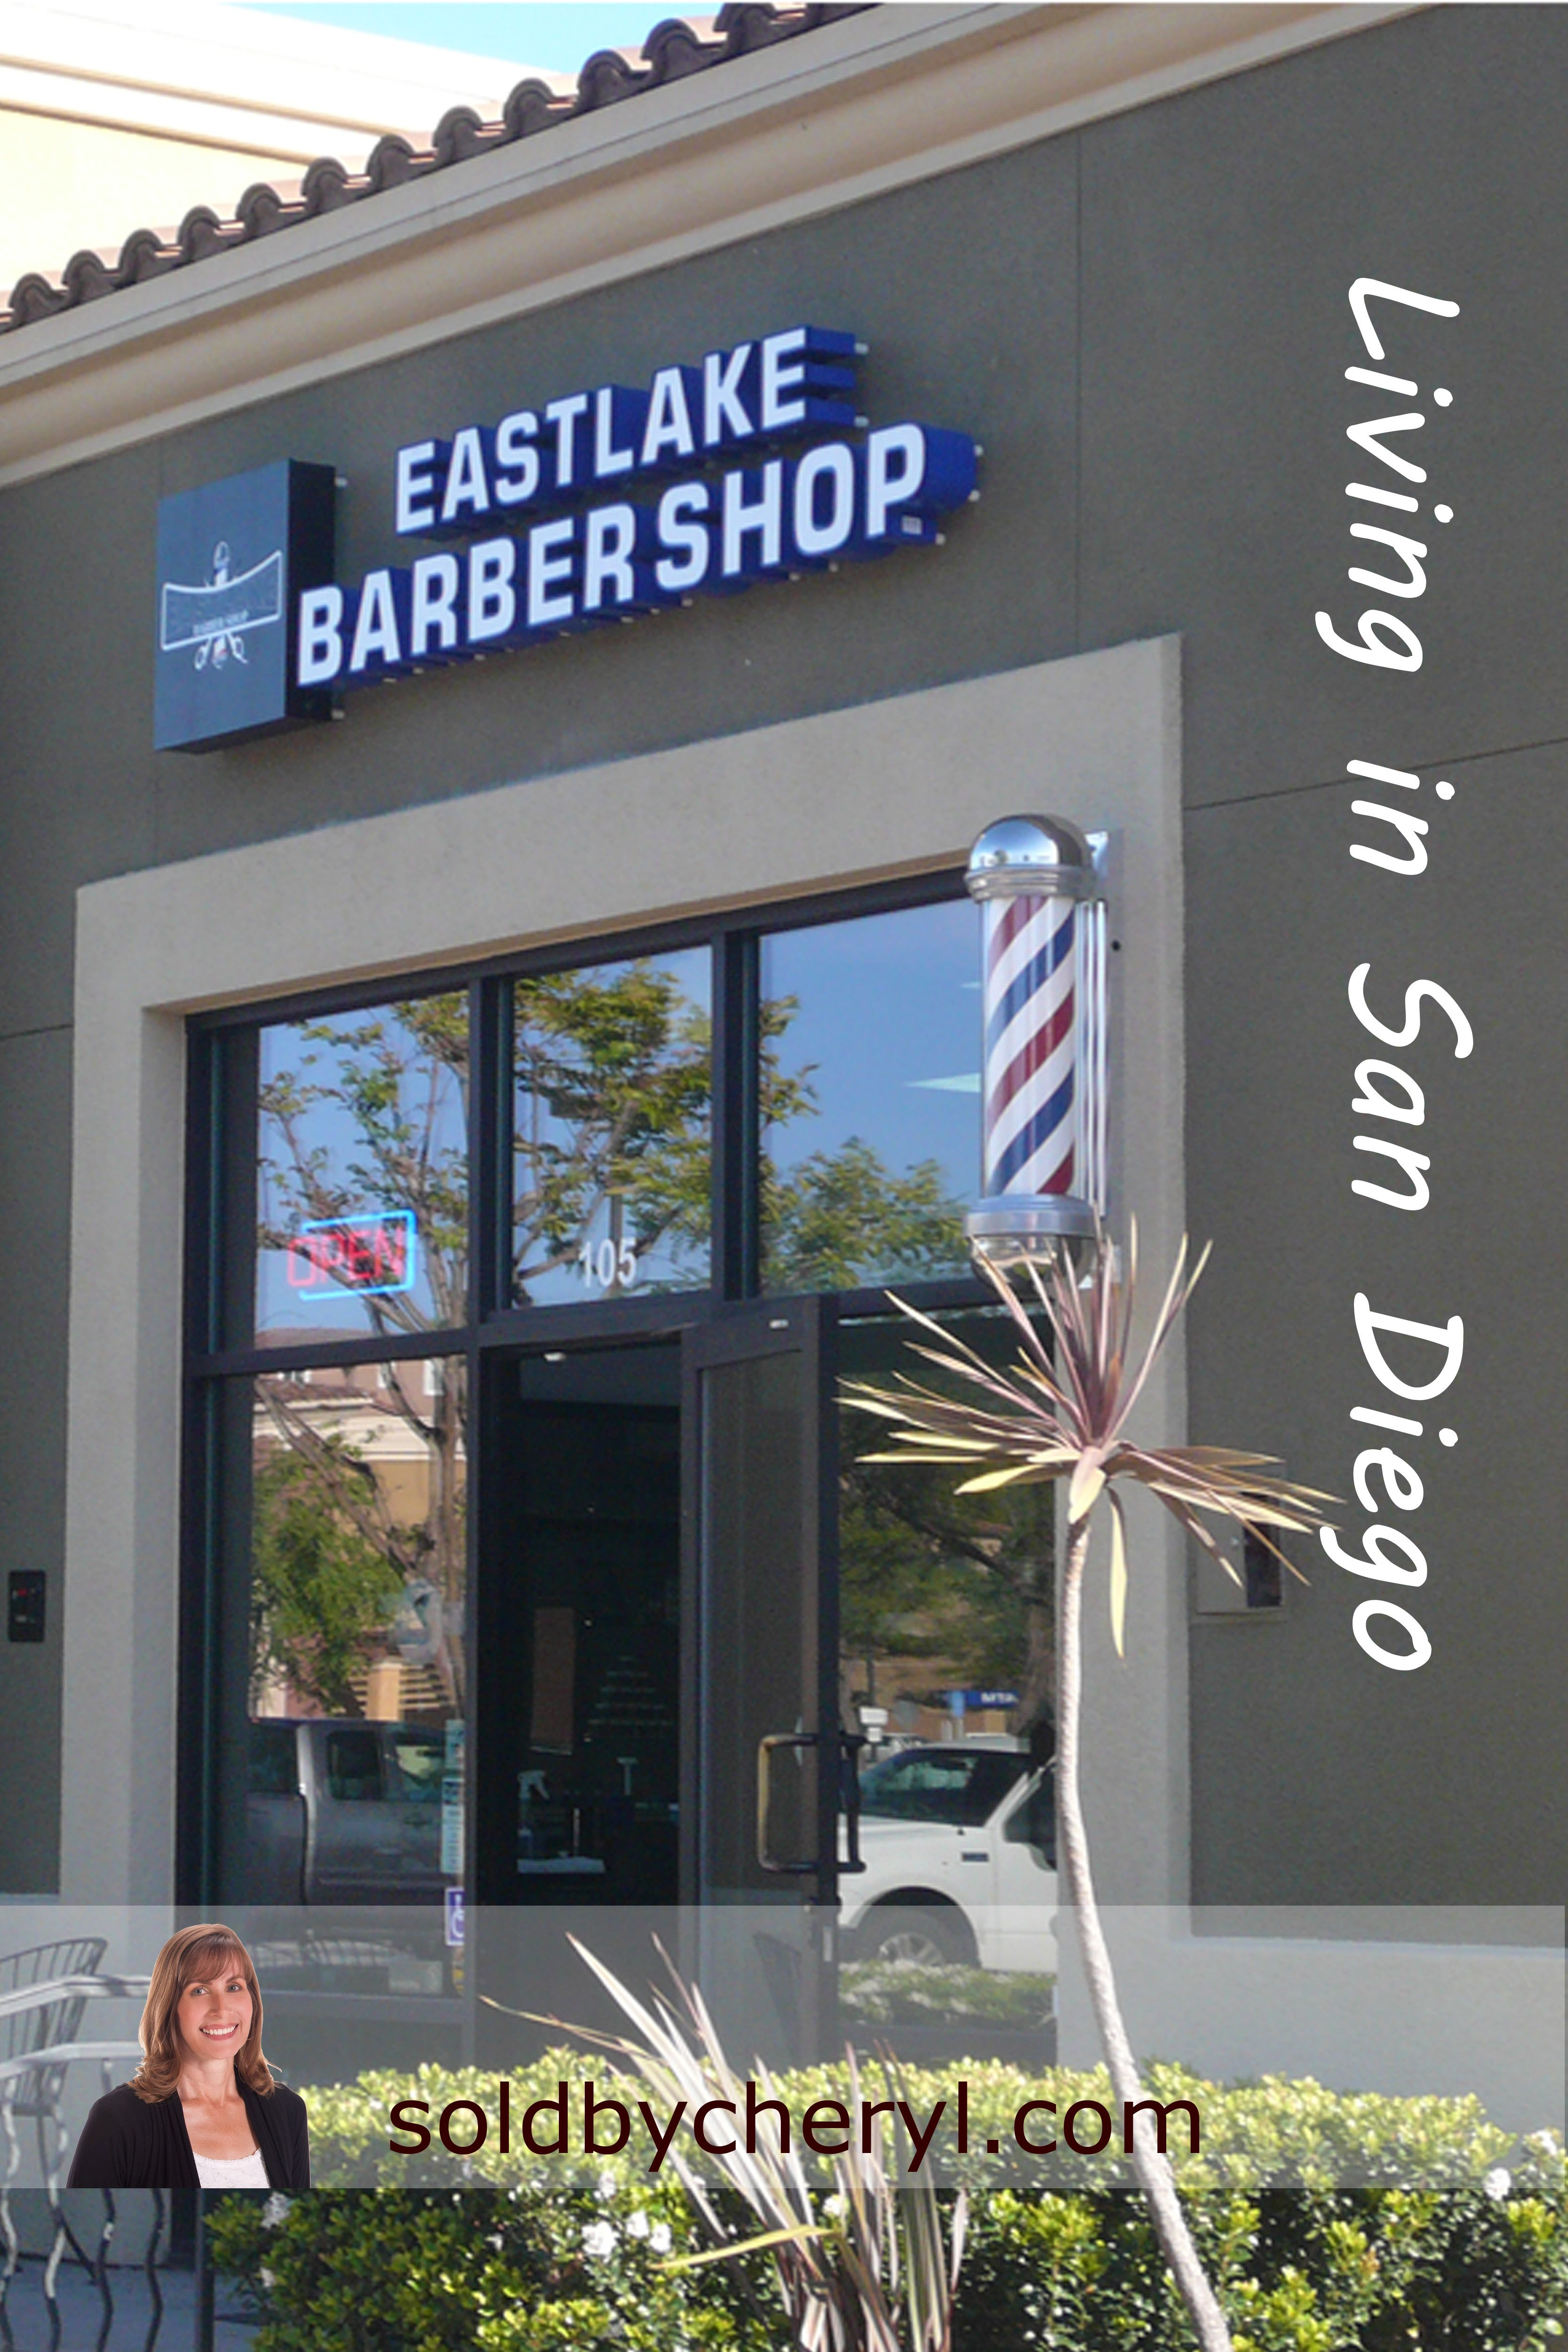 Reasons To Live In Eastlake Chula Vista Eastlake Barber Shop In The